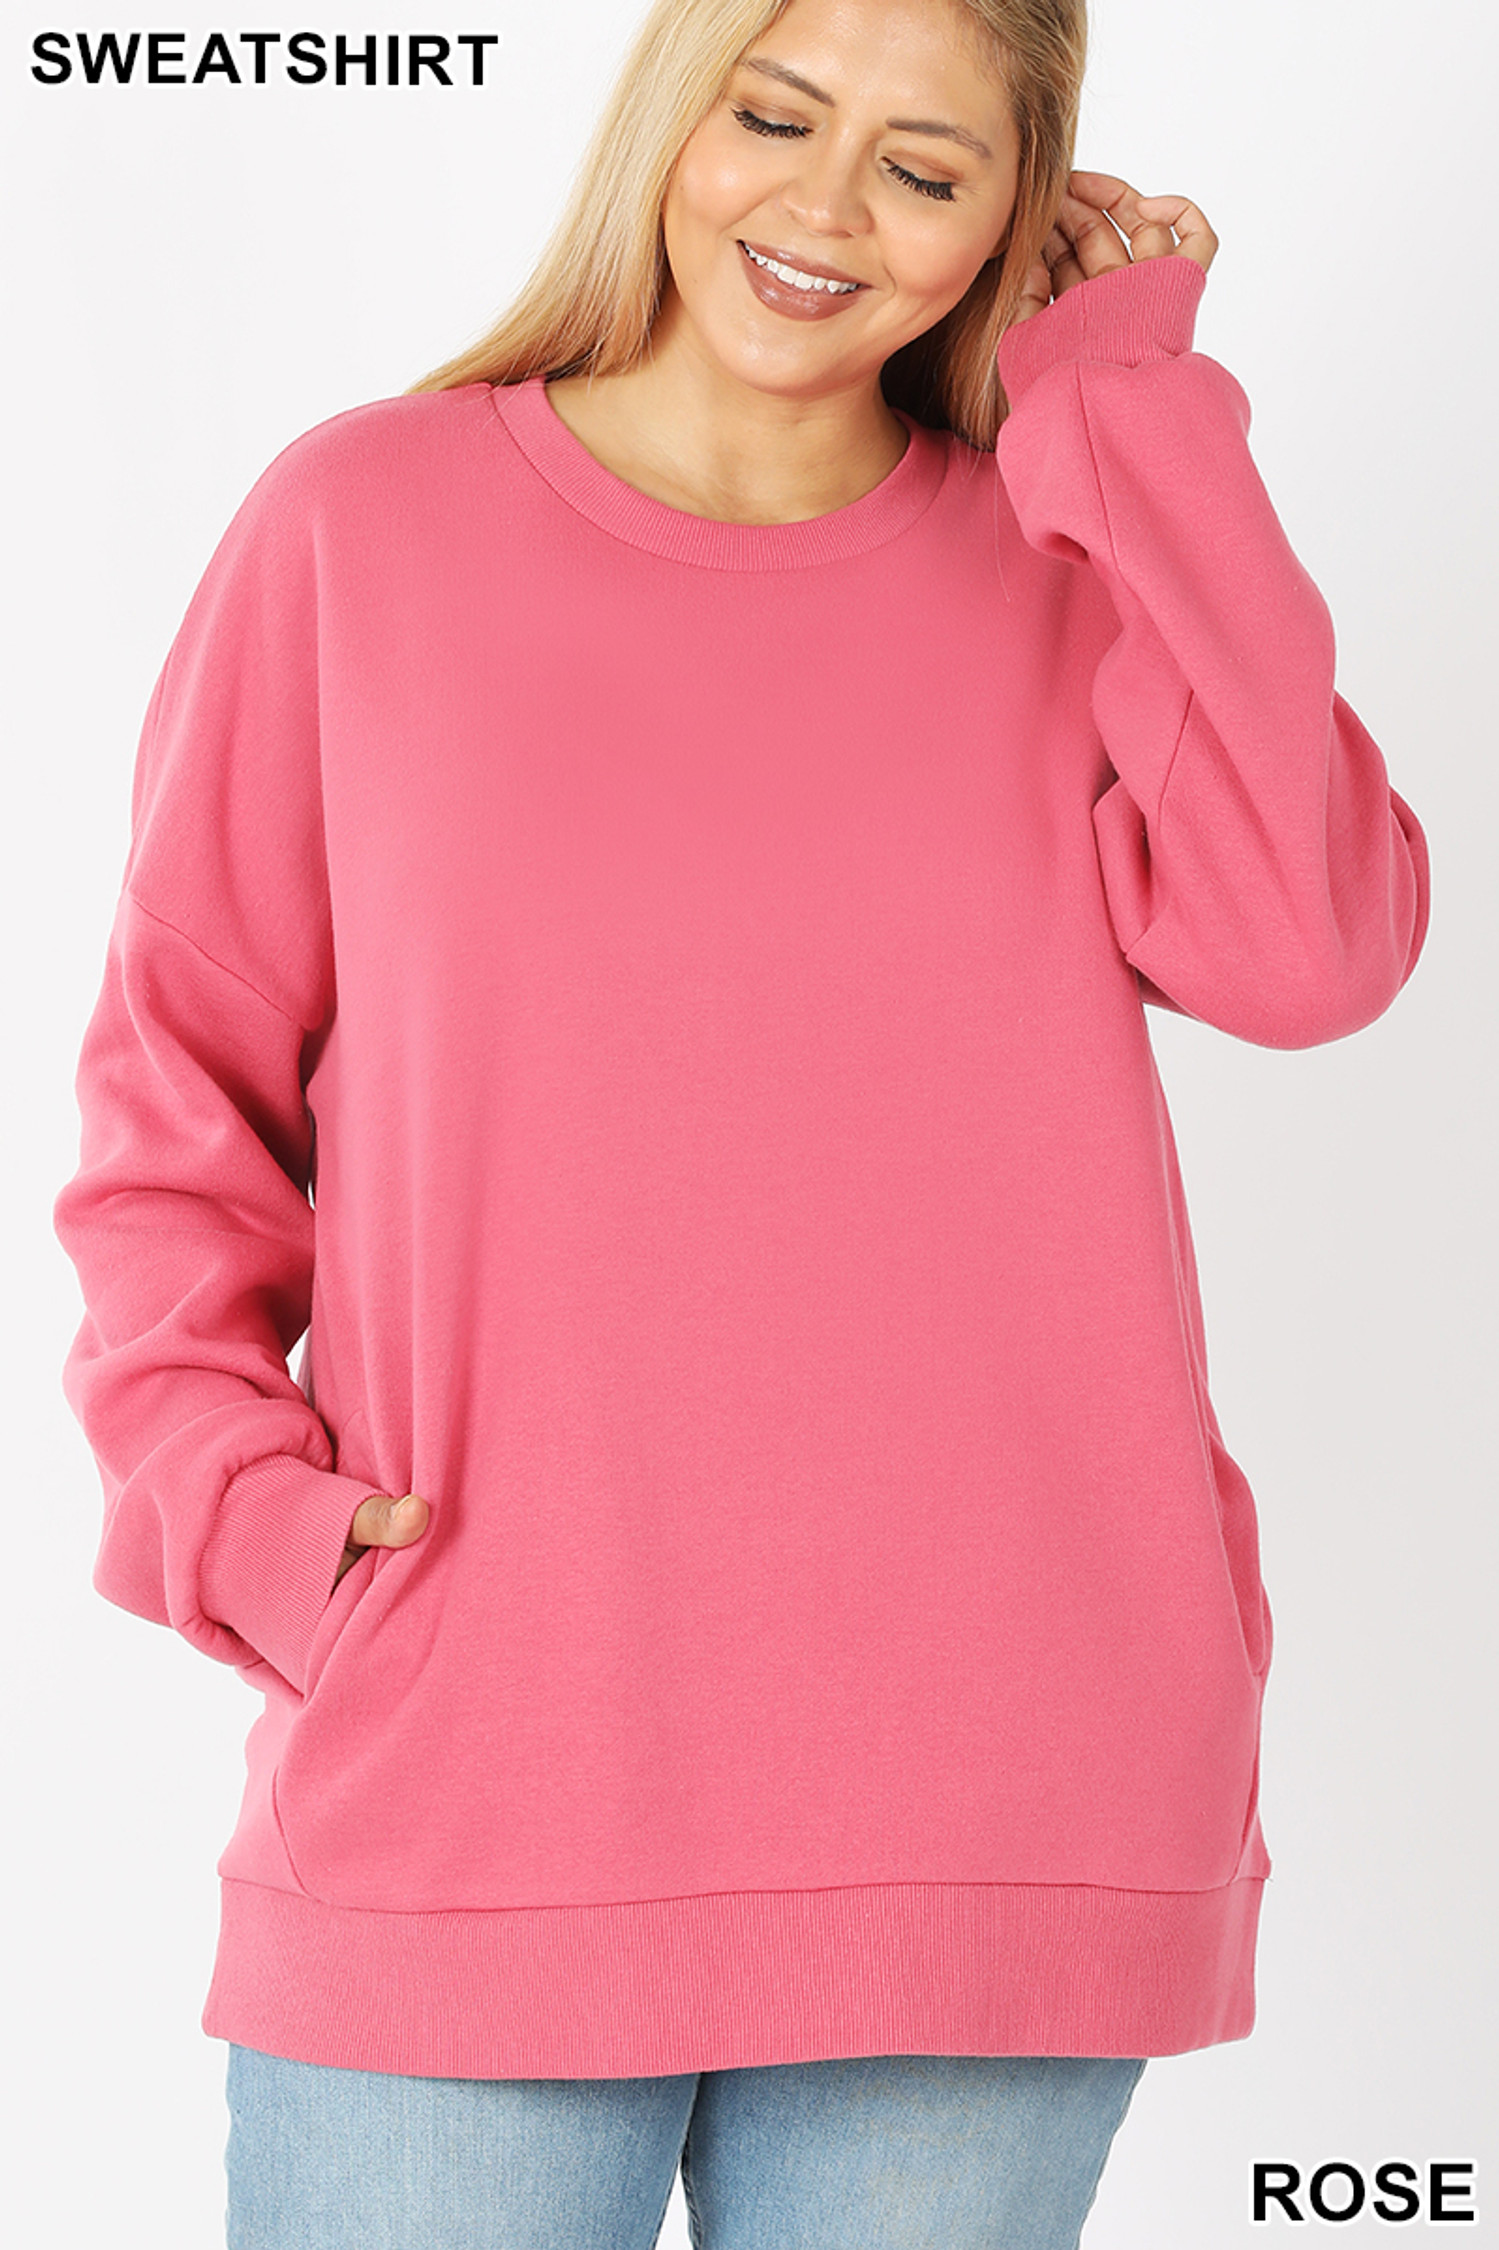 Front image of Rose Cotton Round Crew Neck Plus Size Sweatshirt with Side Pockets